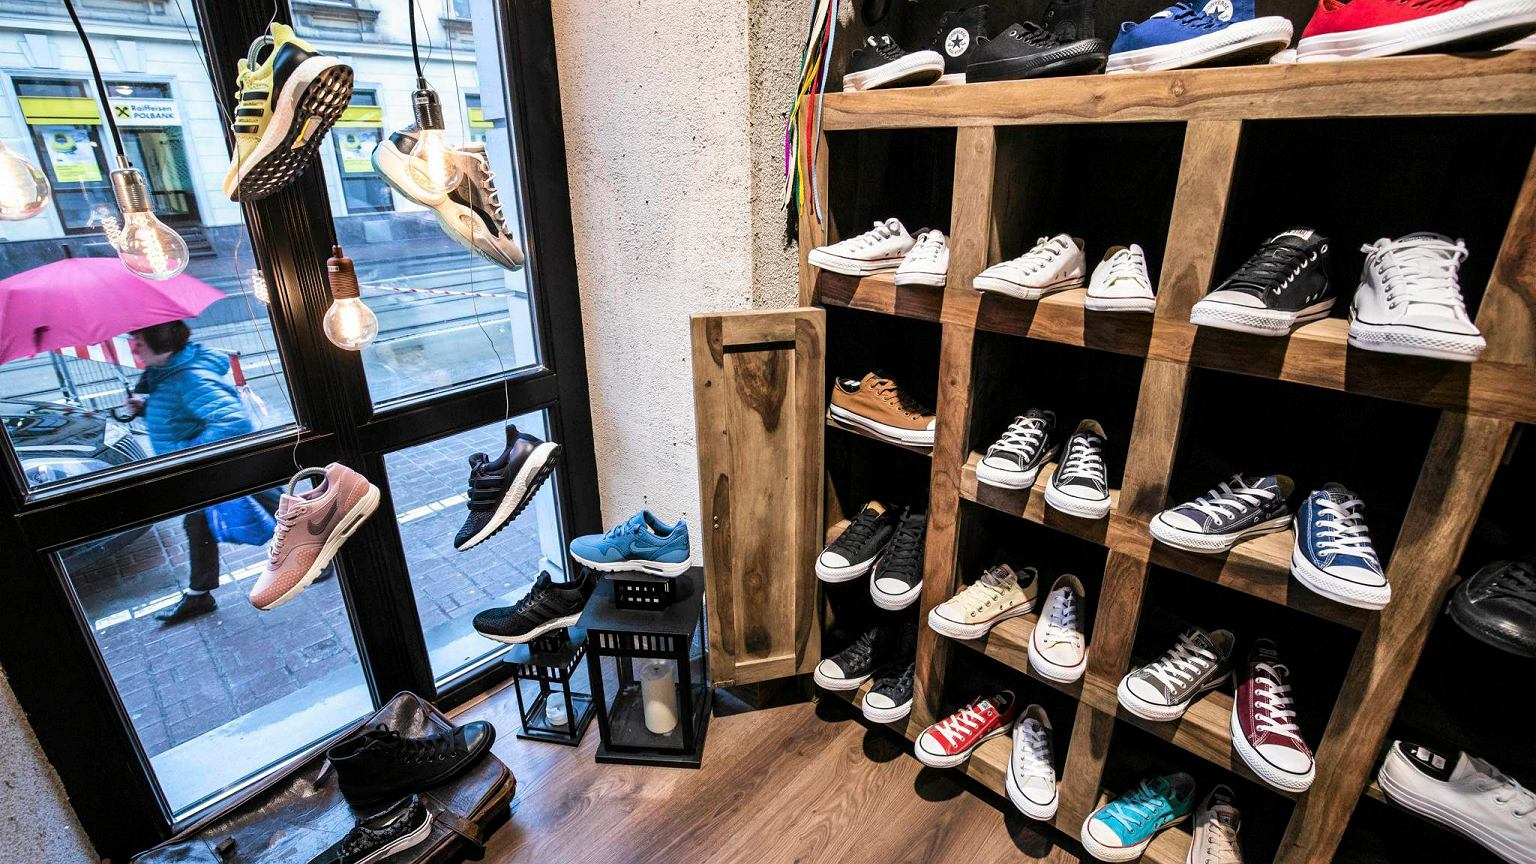 First of all Street Supply store is located in Warsaw's City Center. 10 minutes walk from Old Town which is handy especially for tourists. The store has been set in tenements house's ground floor and it's welcoming You with levitating sneakers in the shop window.